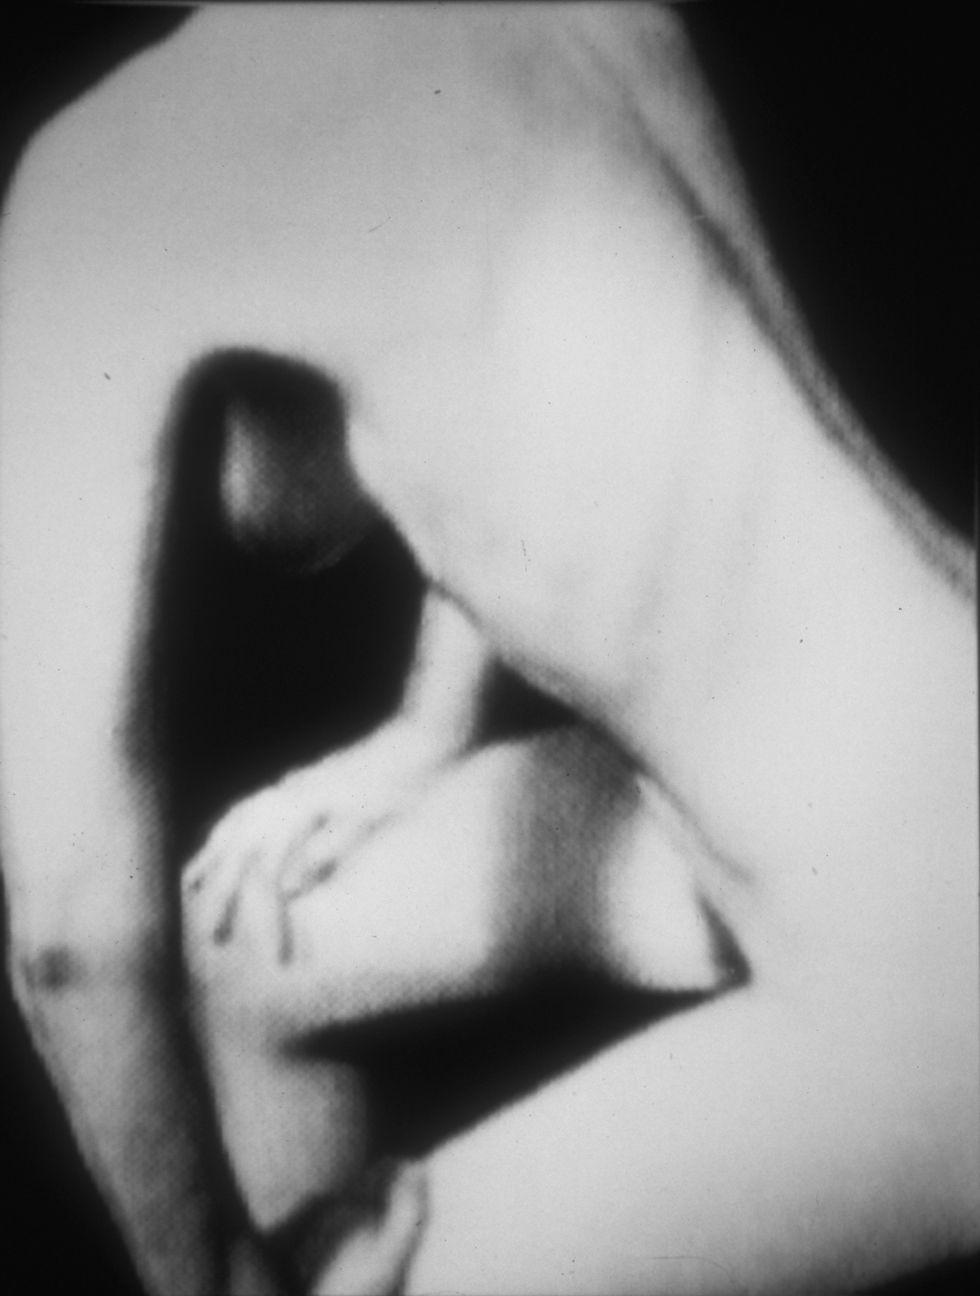 Black and White Nude Study, 1987